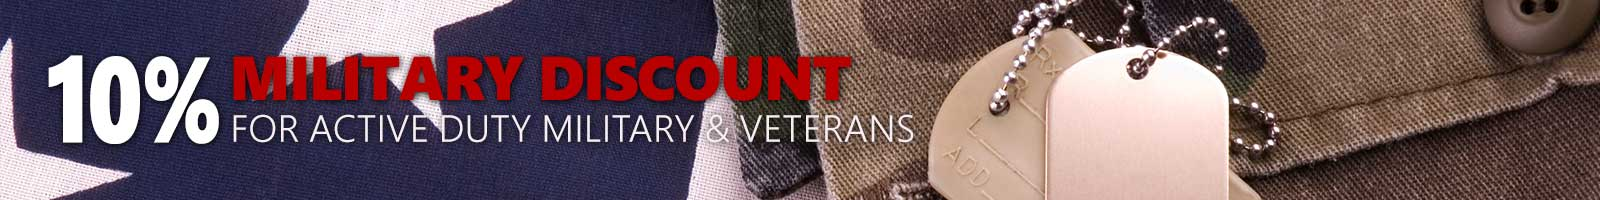 10% Military Discount for active duty military and veterans.